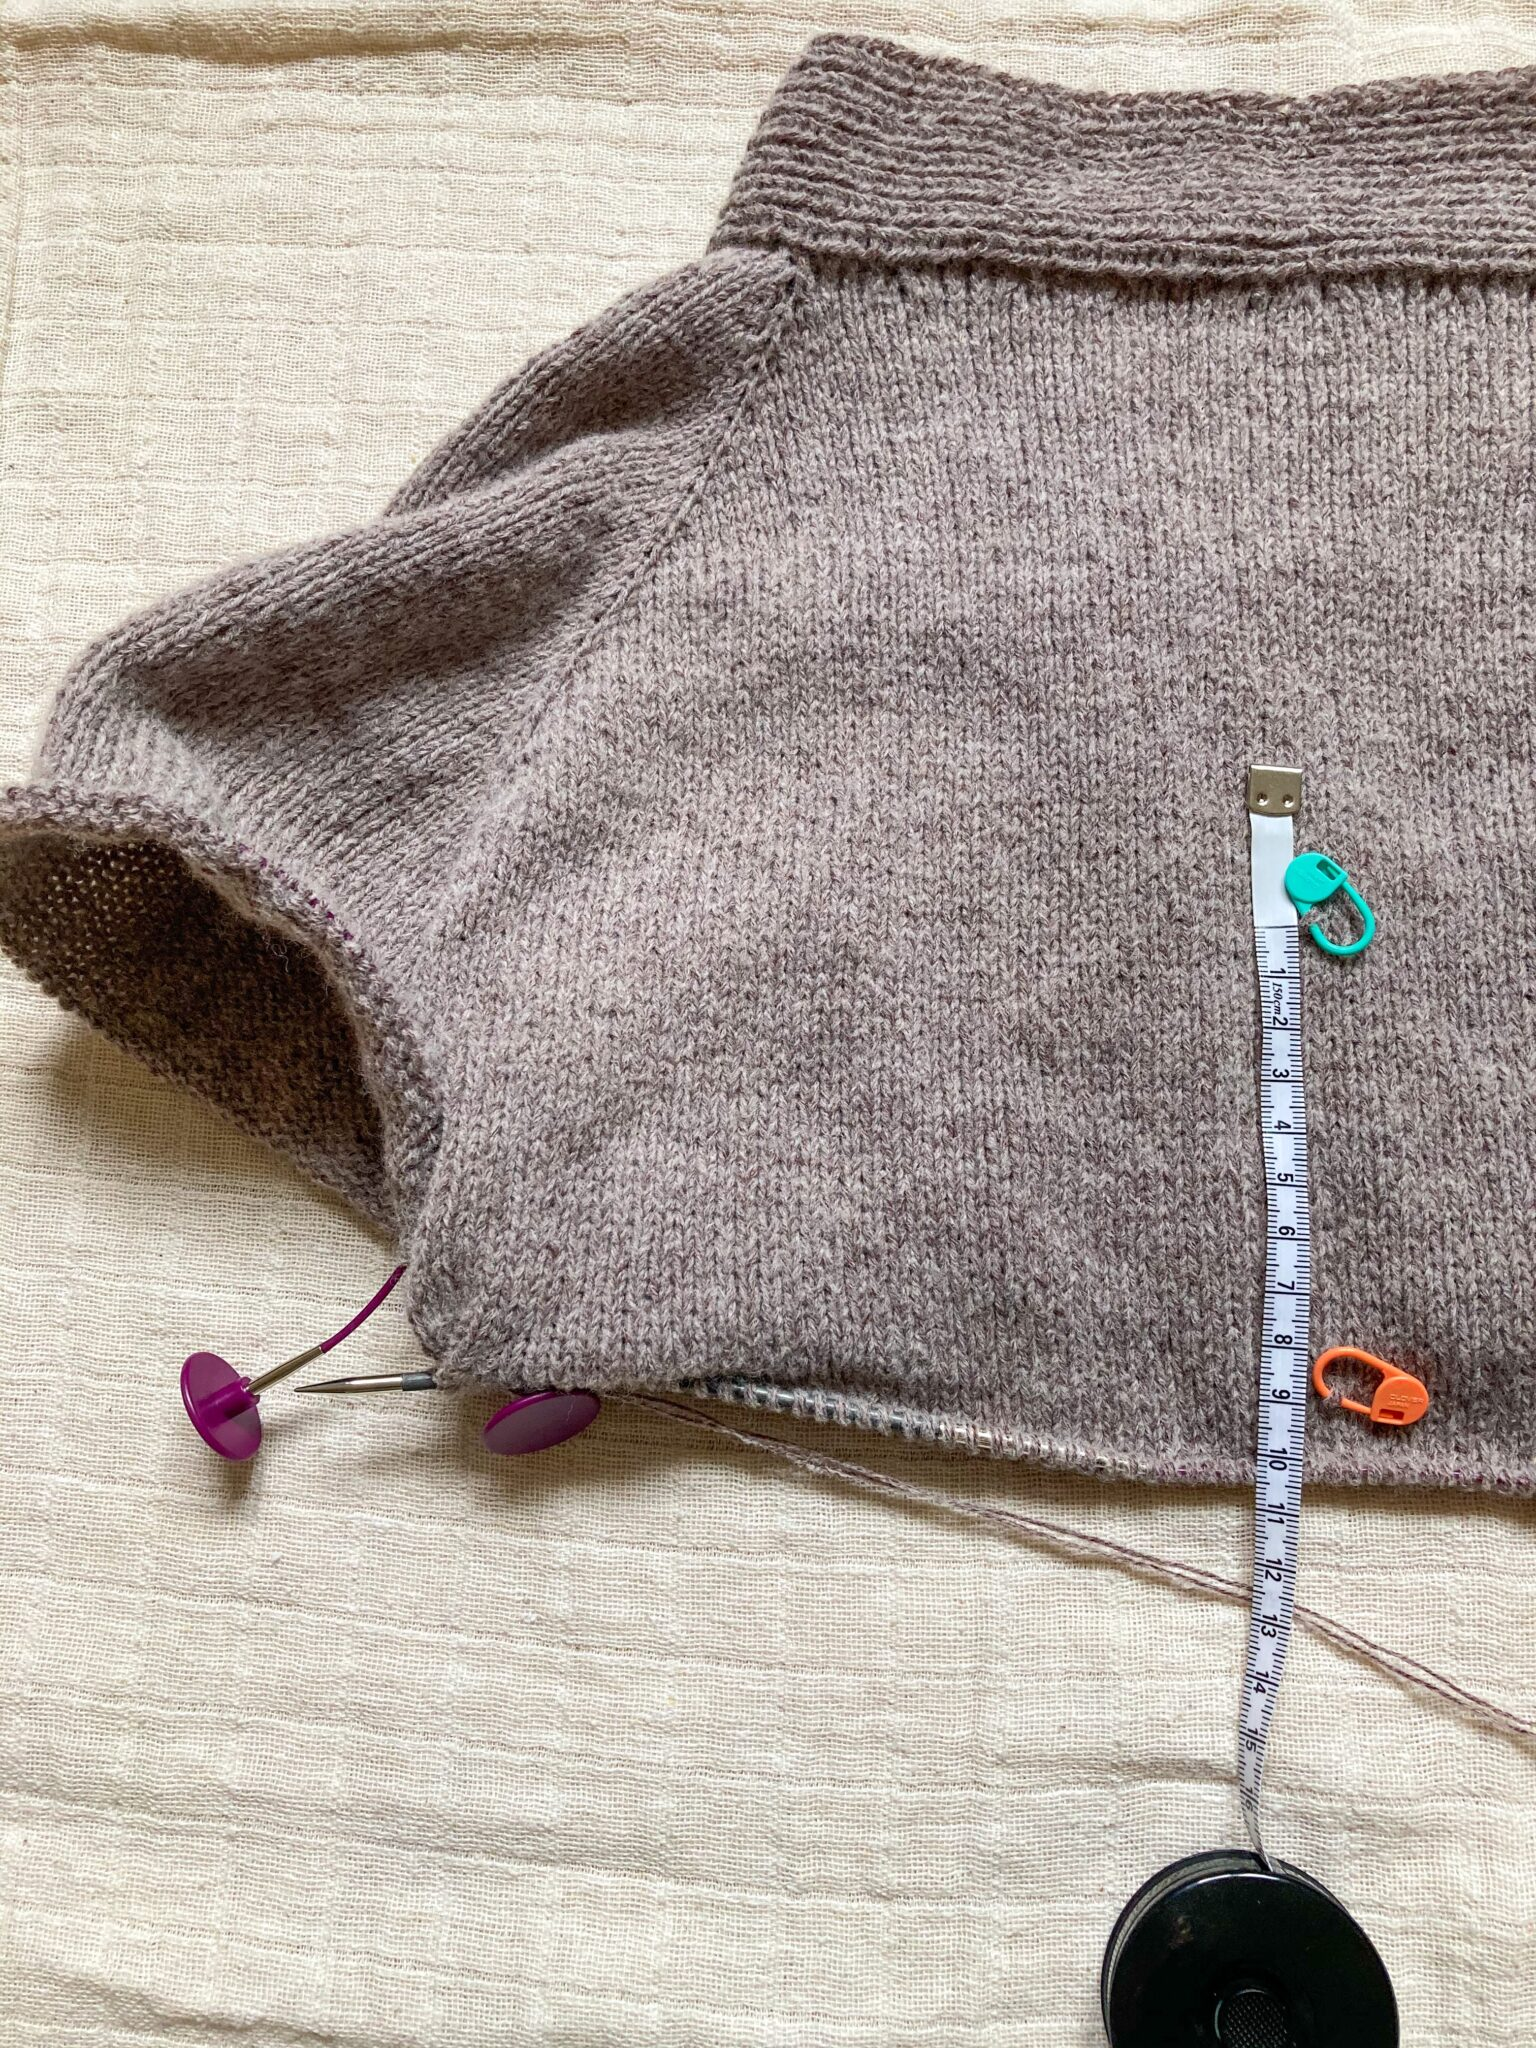 No Frills cardigan with measuring tape showing progress. 10 cm knit from stitch marker.